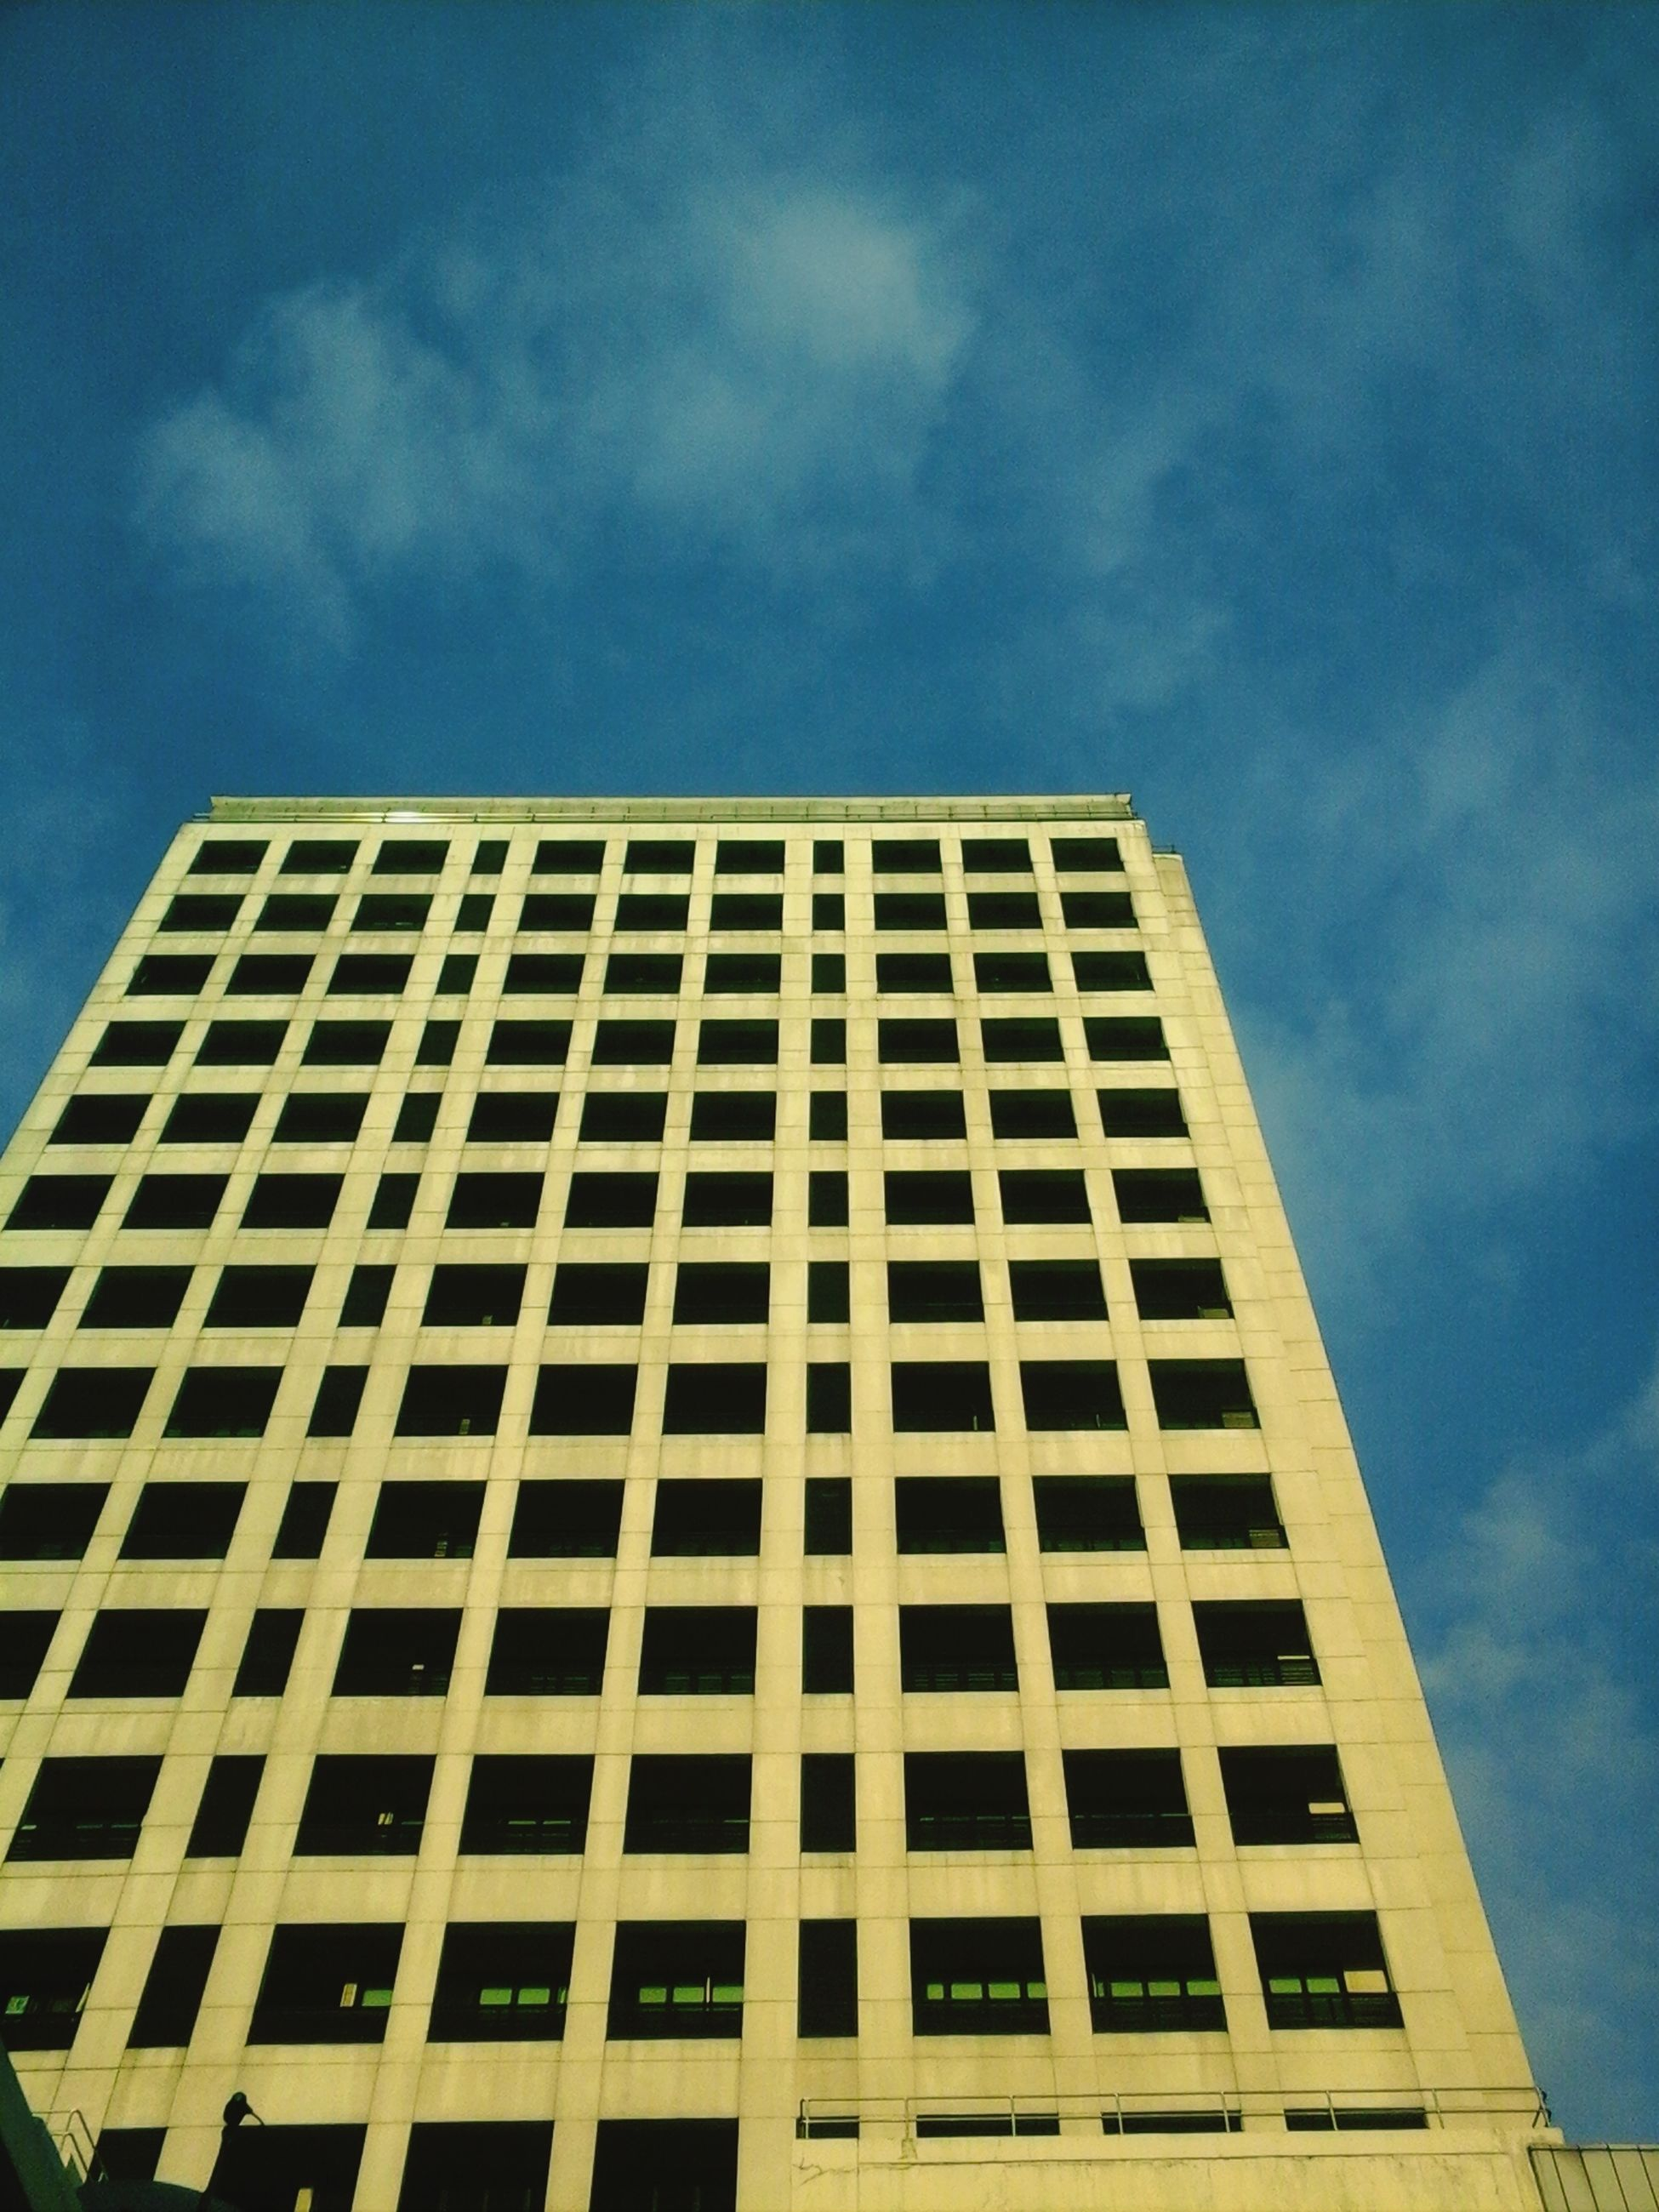 architecture, low angle view, building exterior, built structure, sky, modern, office building, window, city, building, glass - material, tall - high, cloud - sky, tower, skyscraper, day, reflection, outdoors, cloud, blue